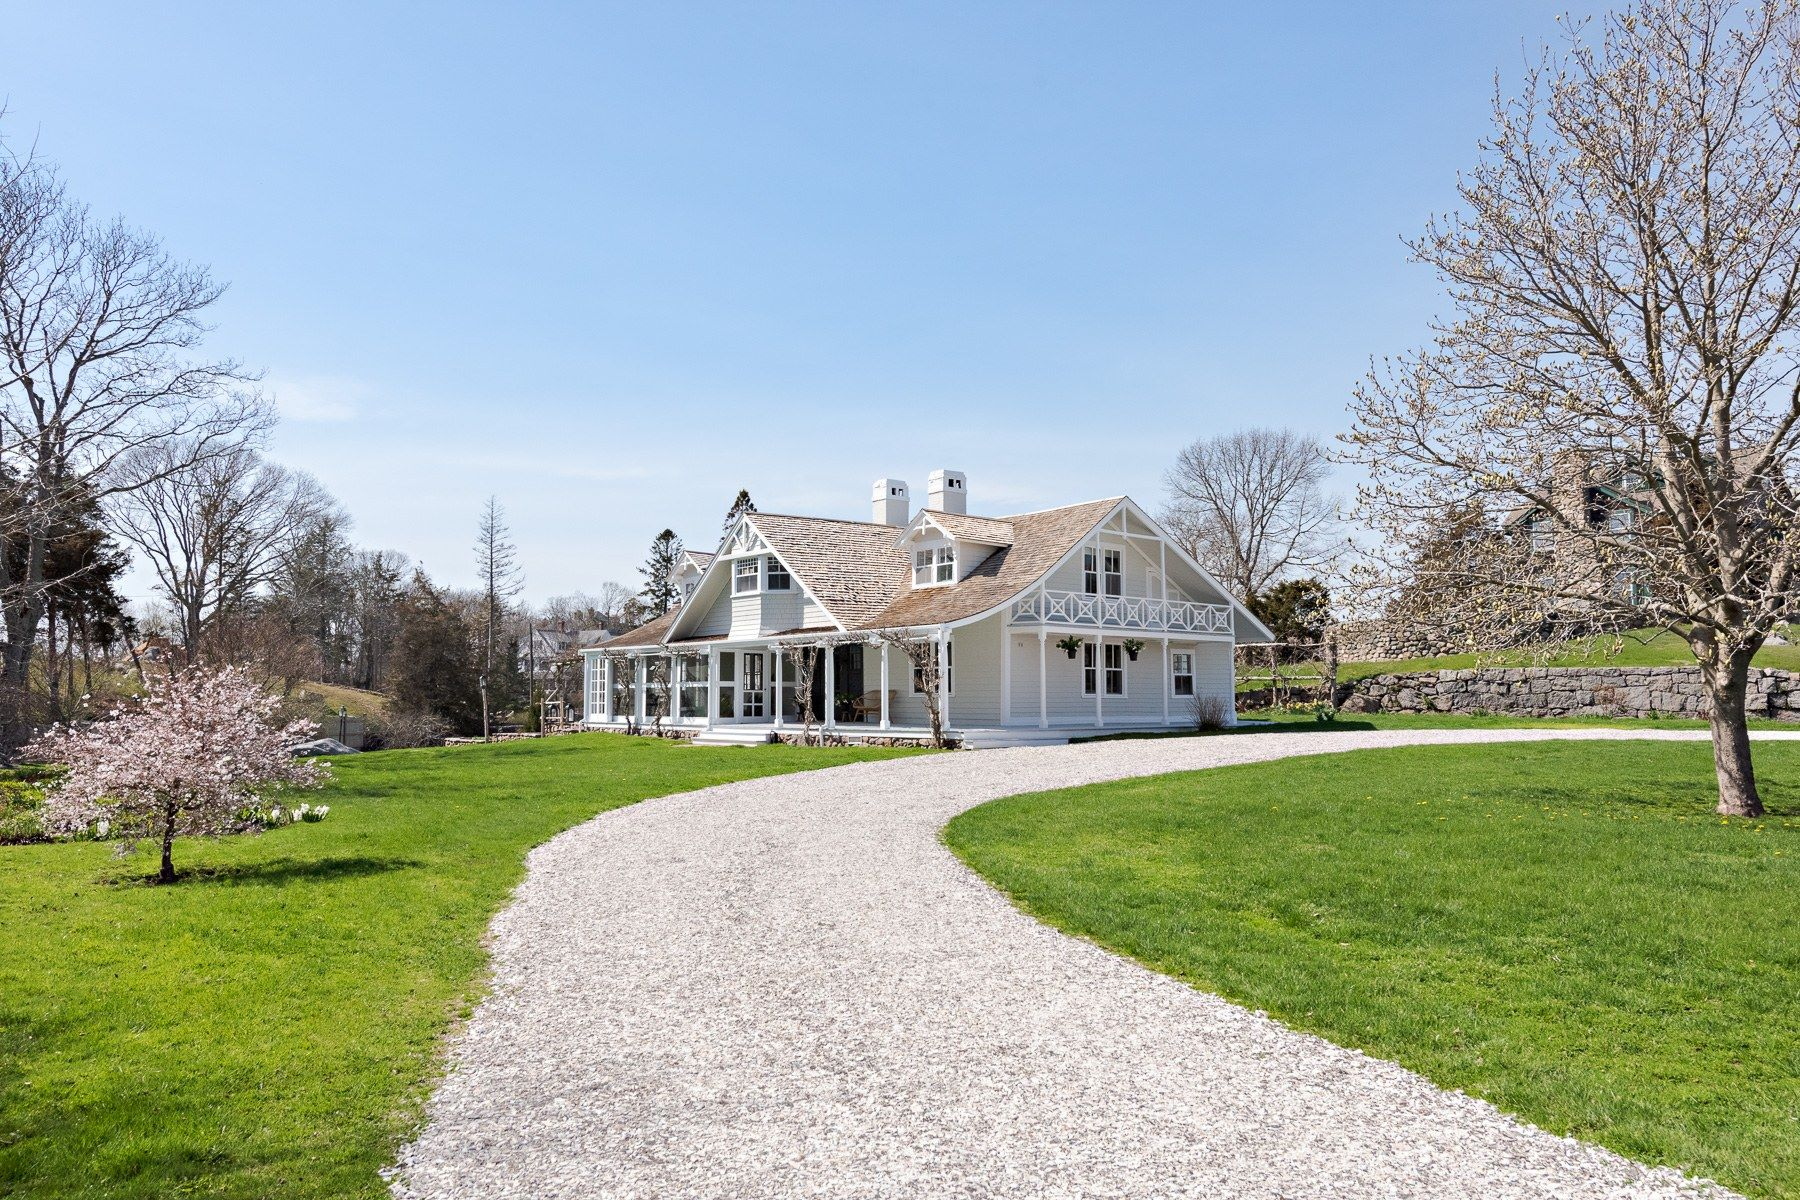 Single Family Homes for Sale at 11 Westerly Road, Westerly, RI 11 Westerly Road Westerly, Rhode Island 02891 United States